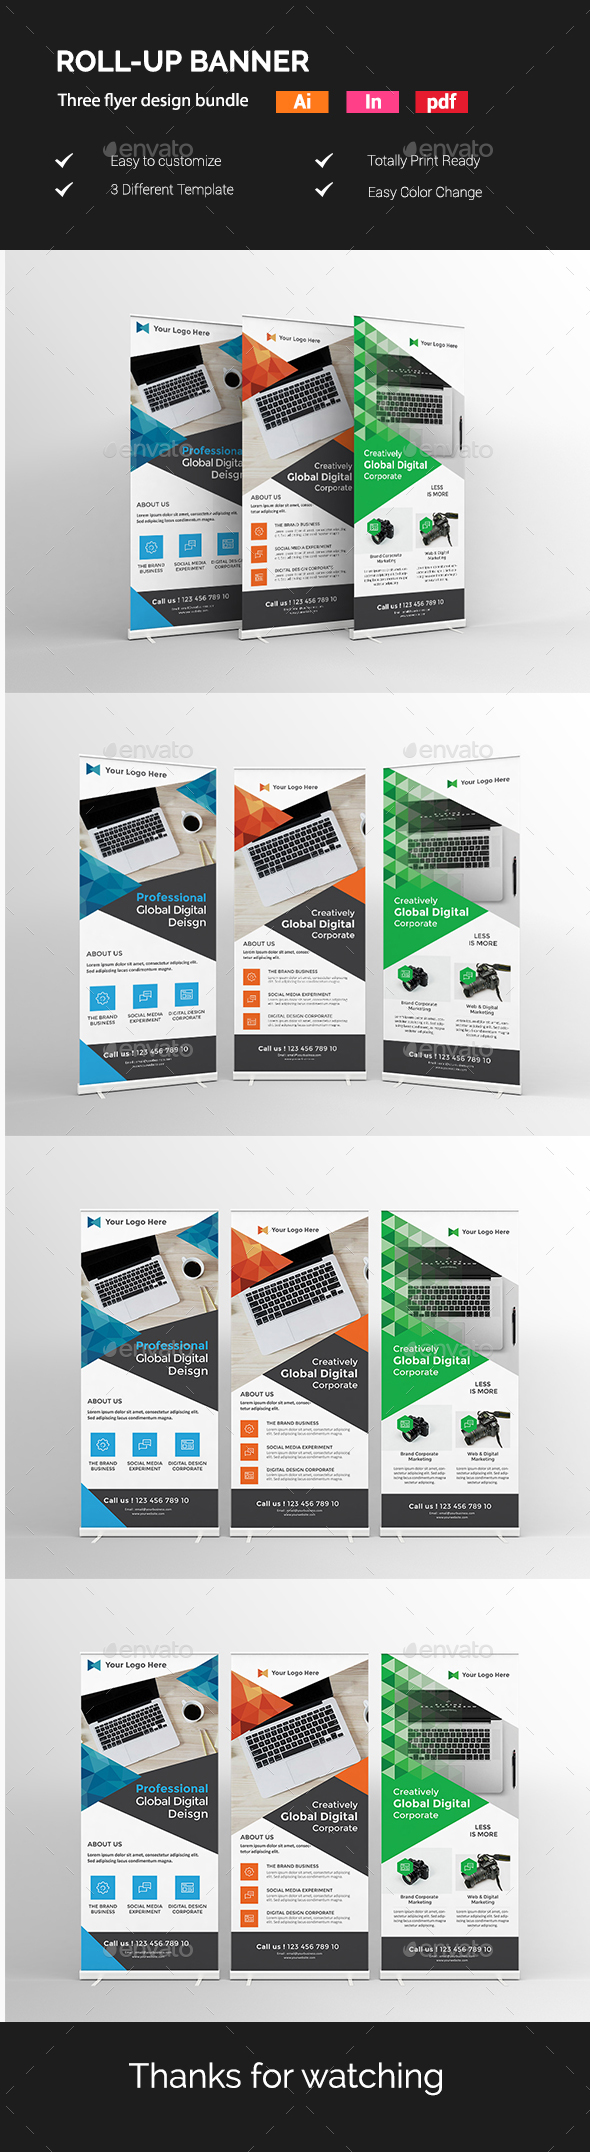 Roll-Up Banner Template Vector EPS, InDesign INDD, AI Illustrator ...